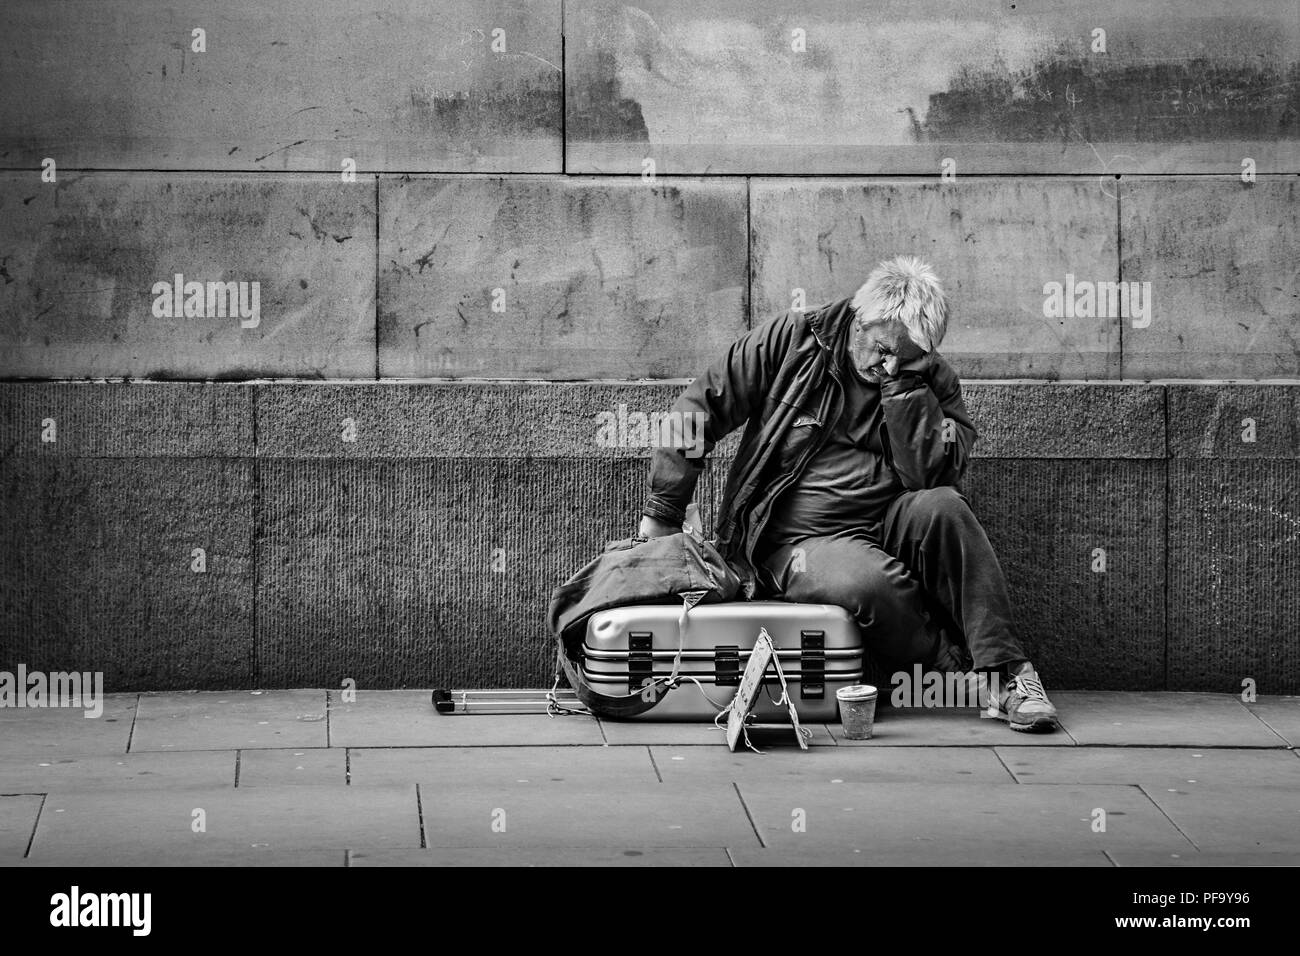 Homeless man with suitcase asleep on the streets of manchester city centre uk stock